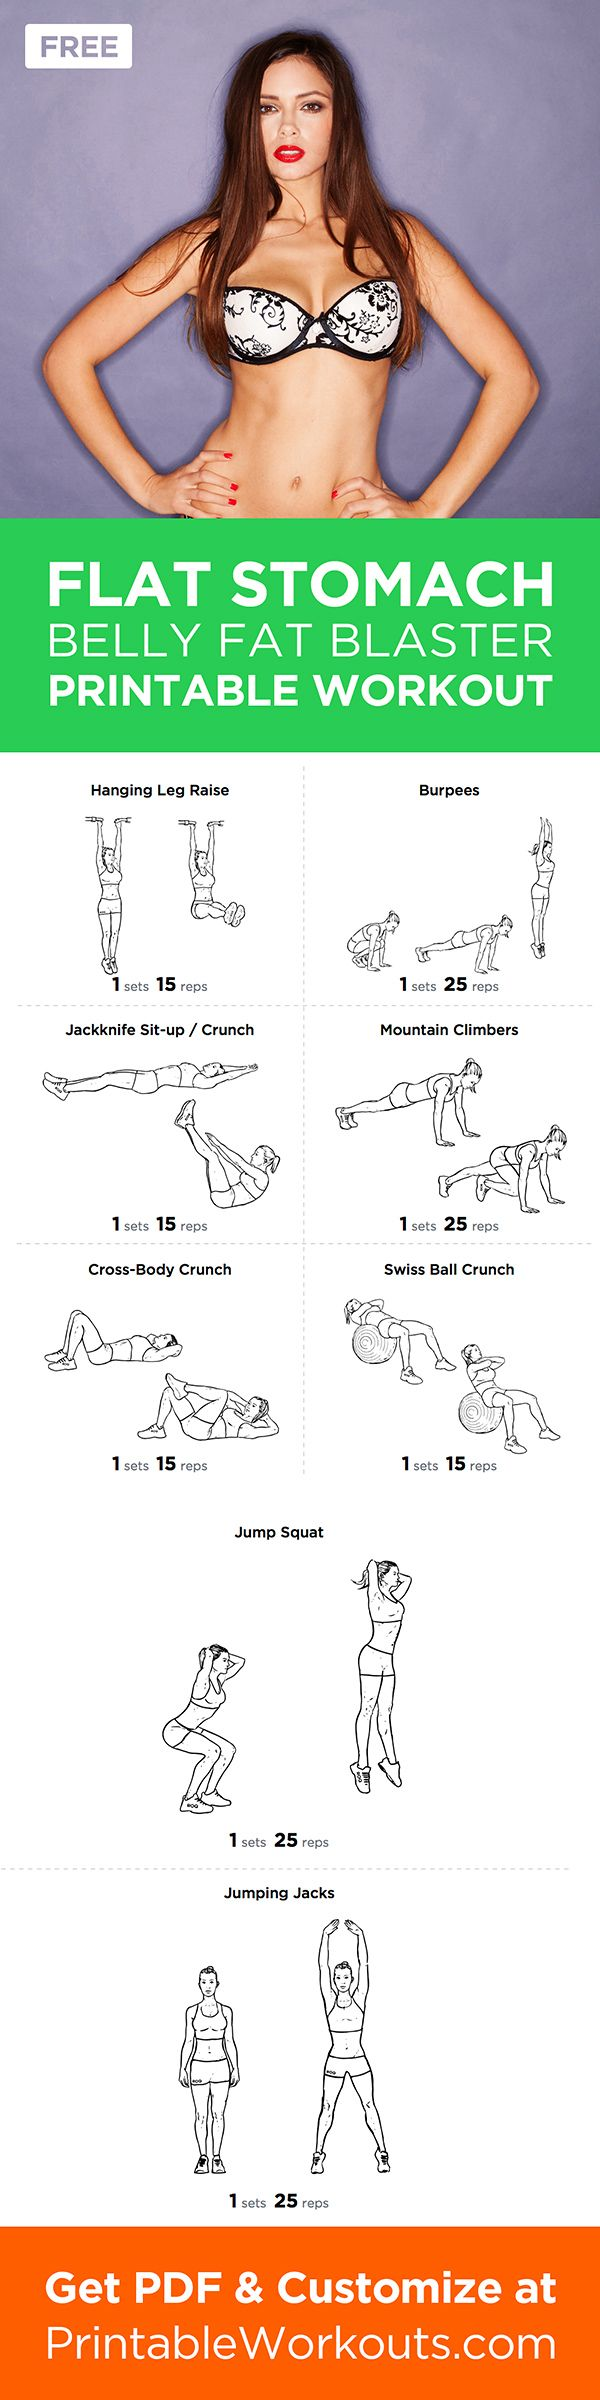 Looking to firm and flatten your stomach for the summer months ahead? This worko